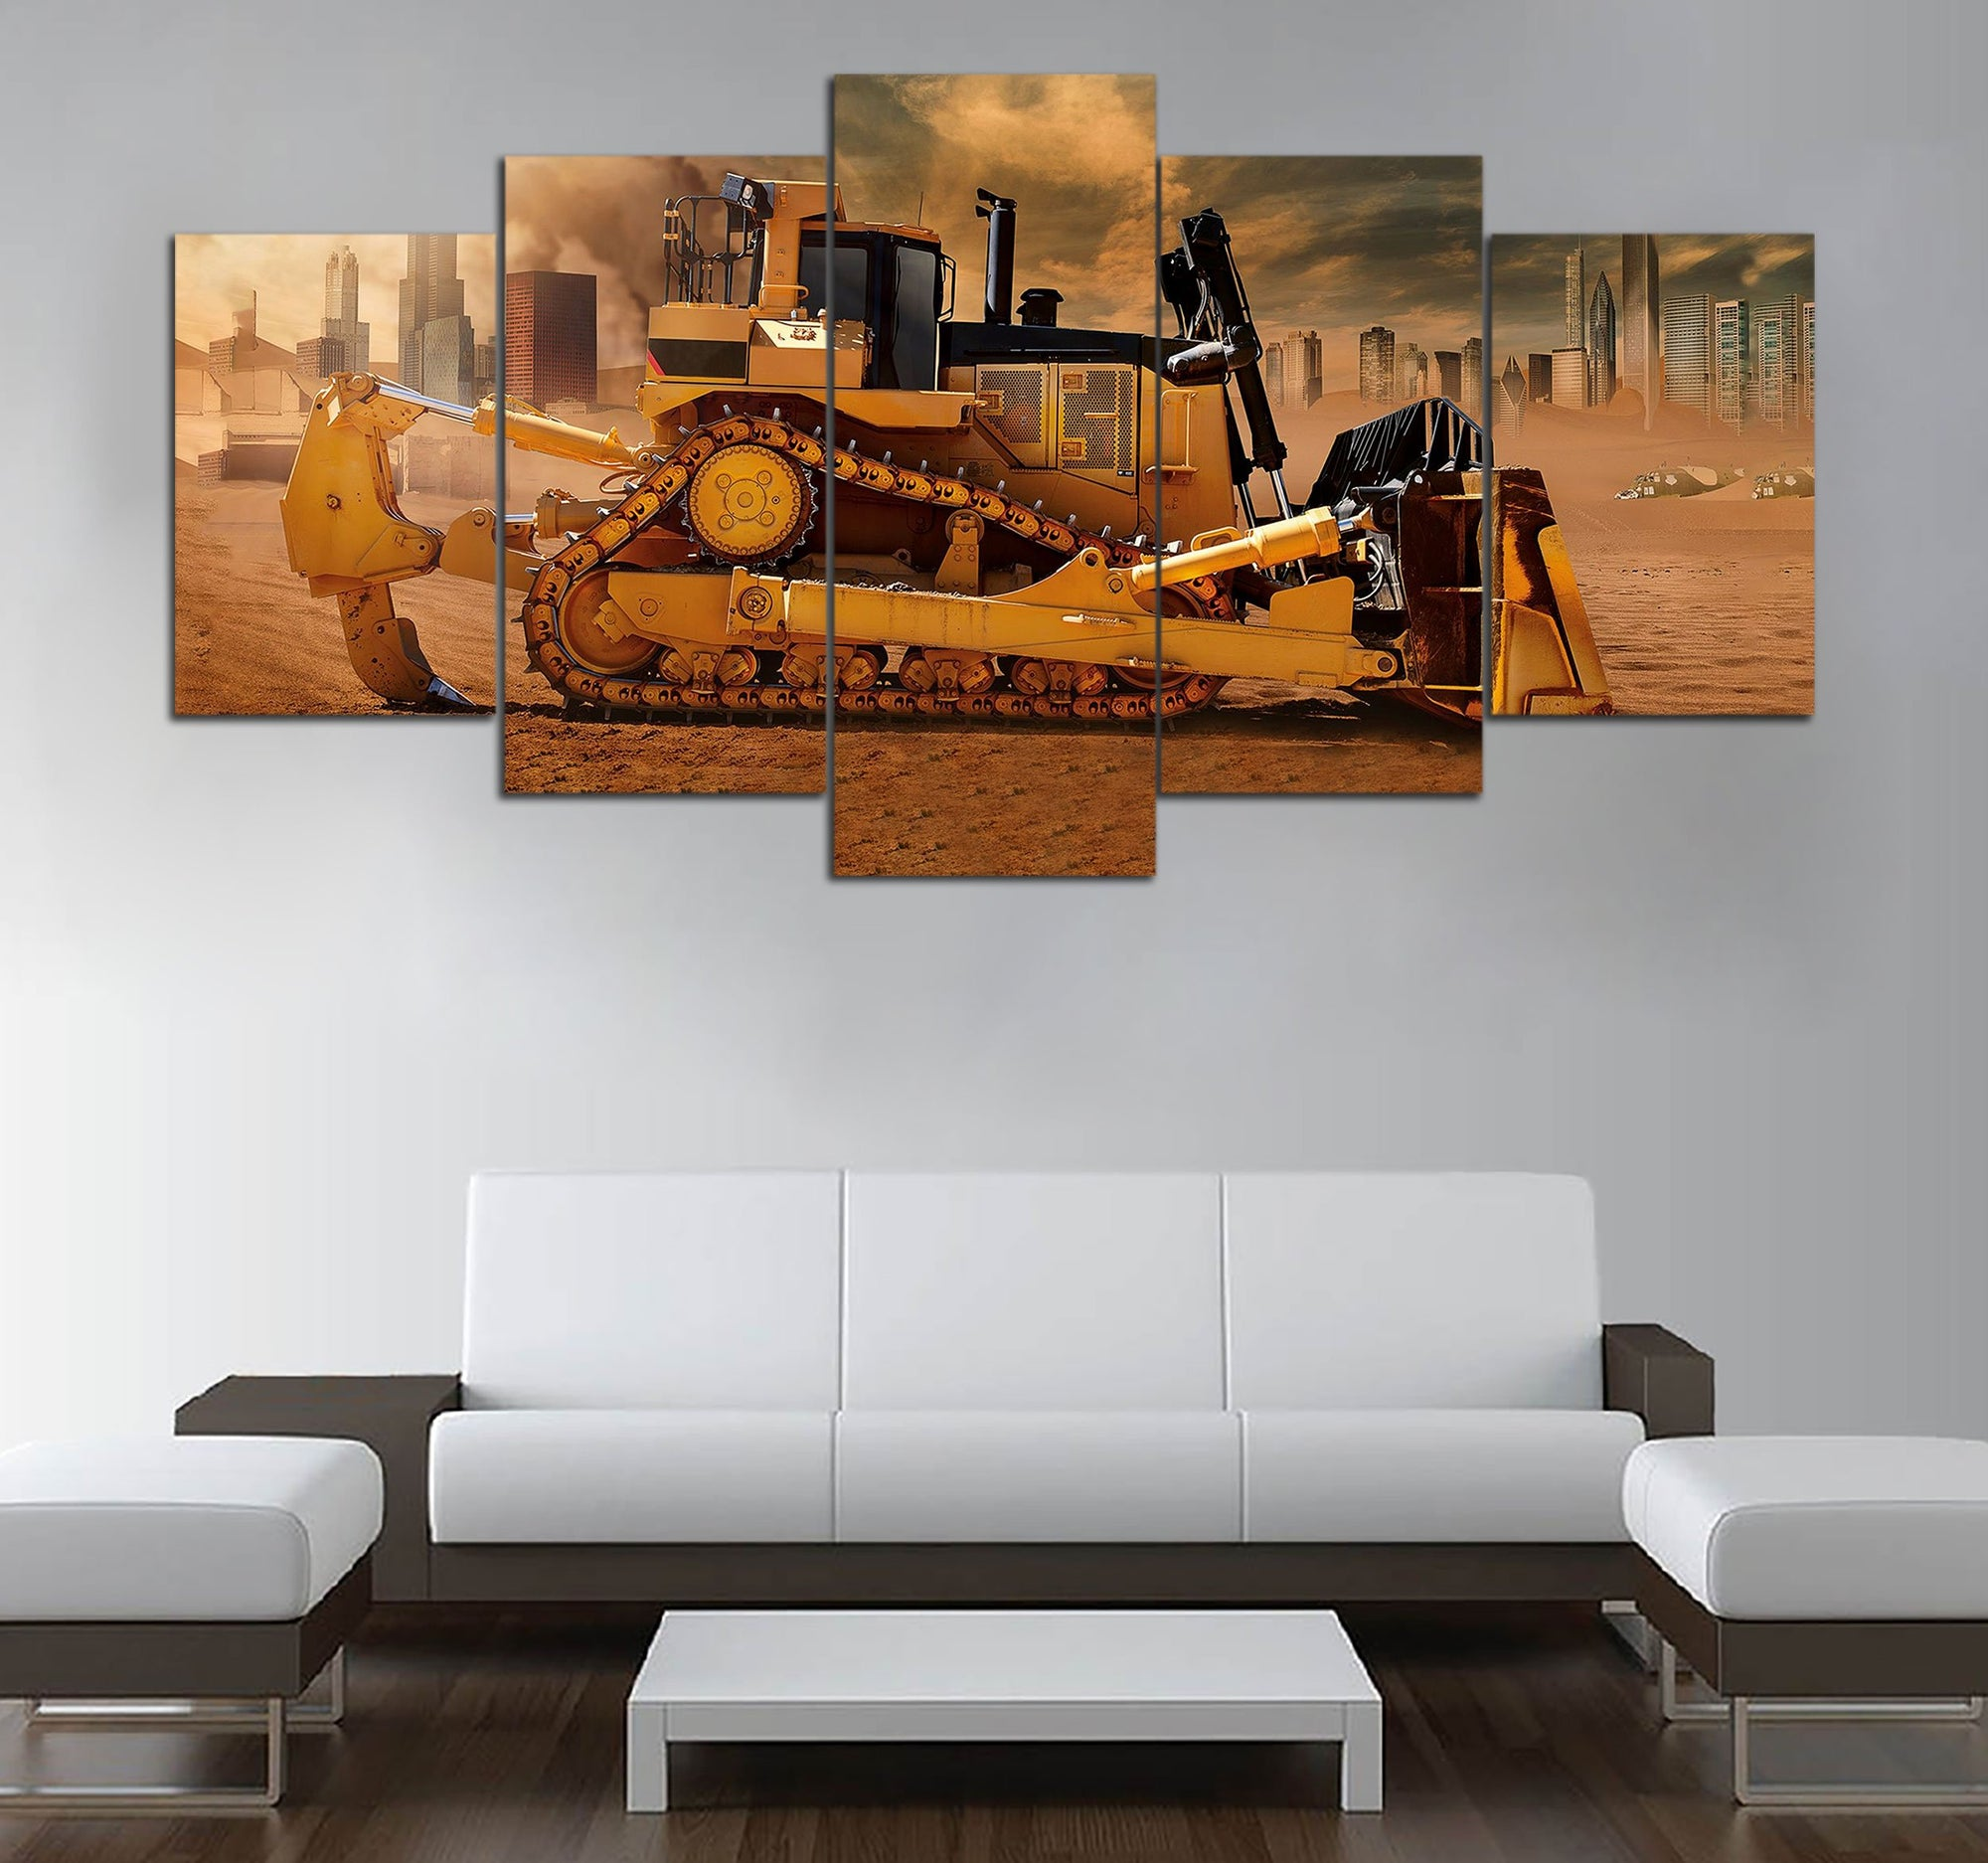 5-piece Cat Bulldoze Printed Canvas Wall Art